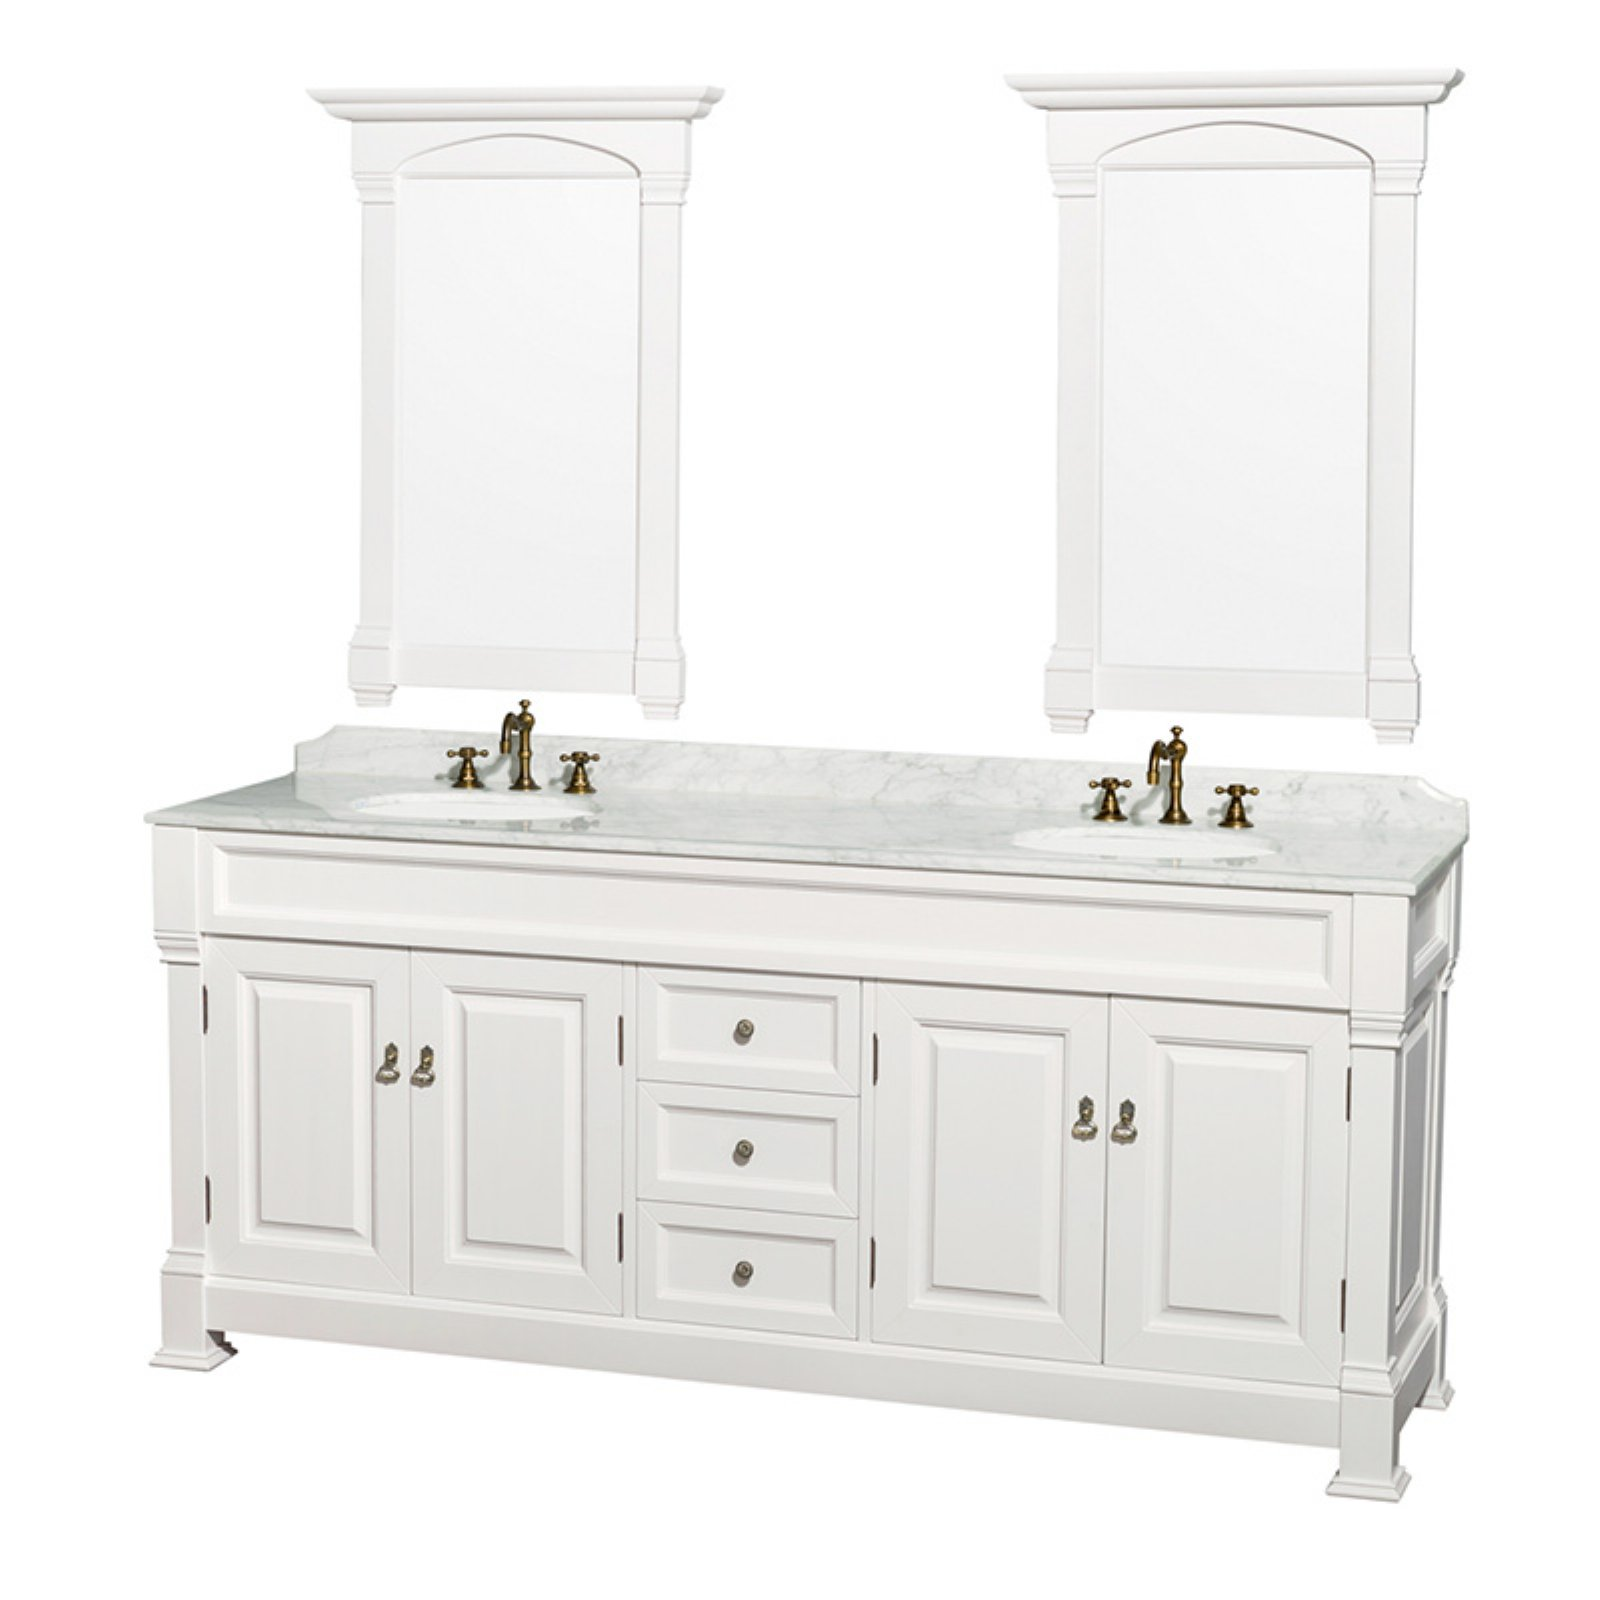 Wyndham Collection Andover 80 inch Double Bathroom Vanity in White with White Carrera Marble Countertop, Undermount Oval Sinks, and 28 inch Mirrors